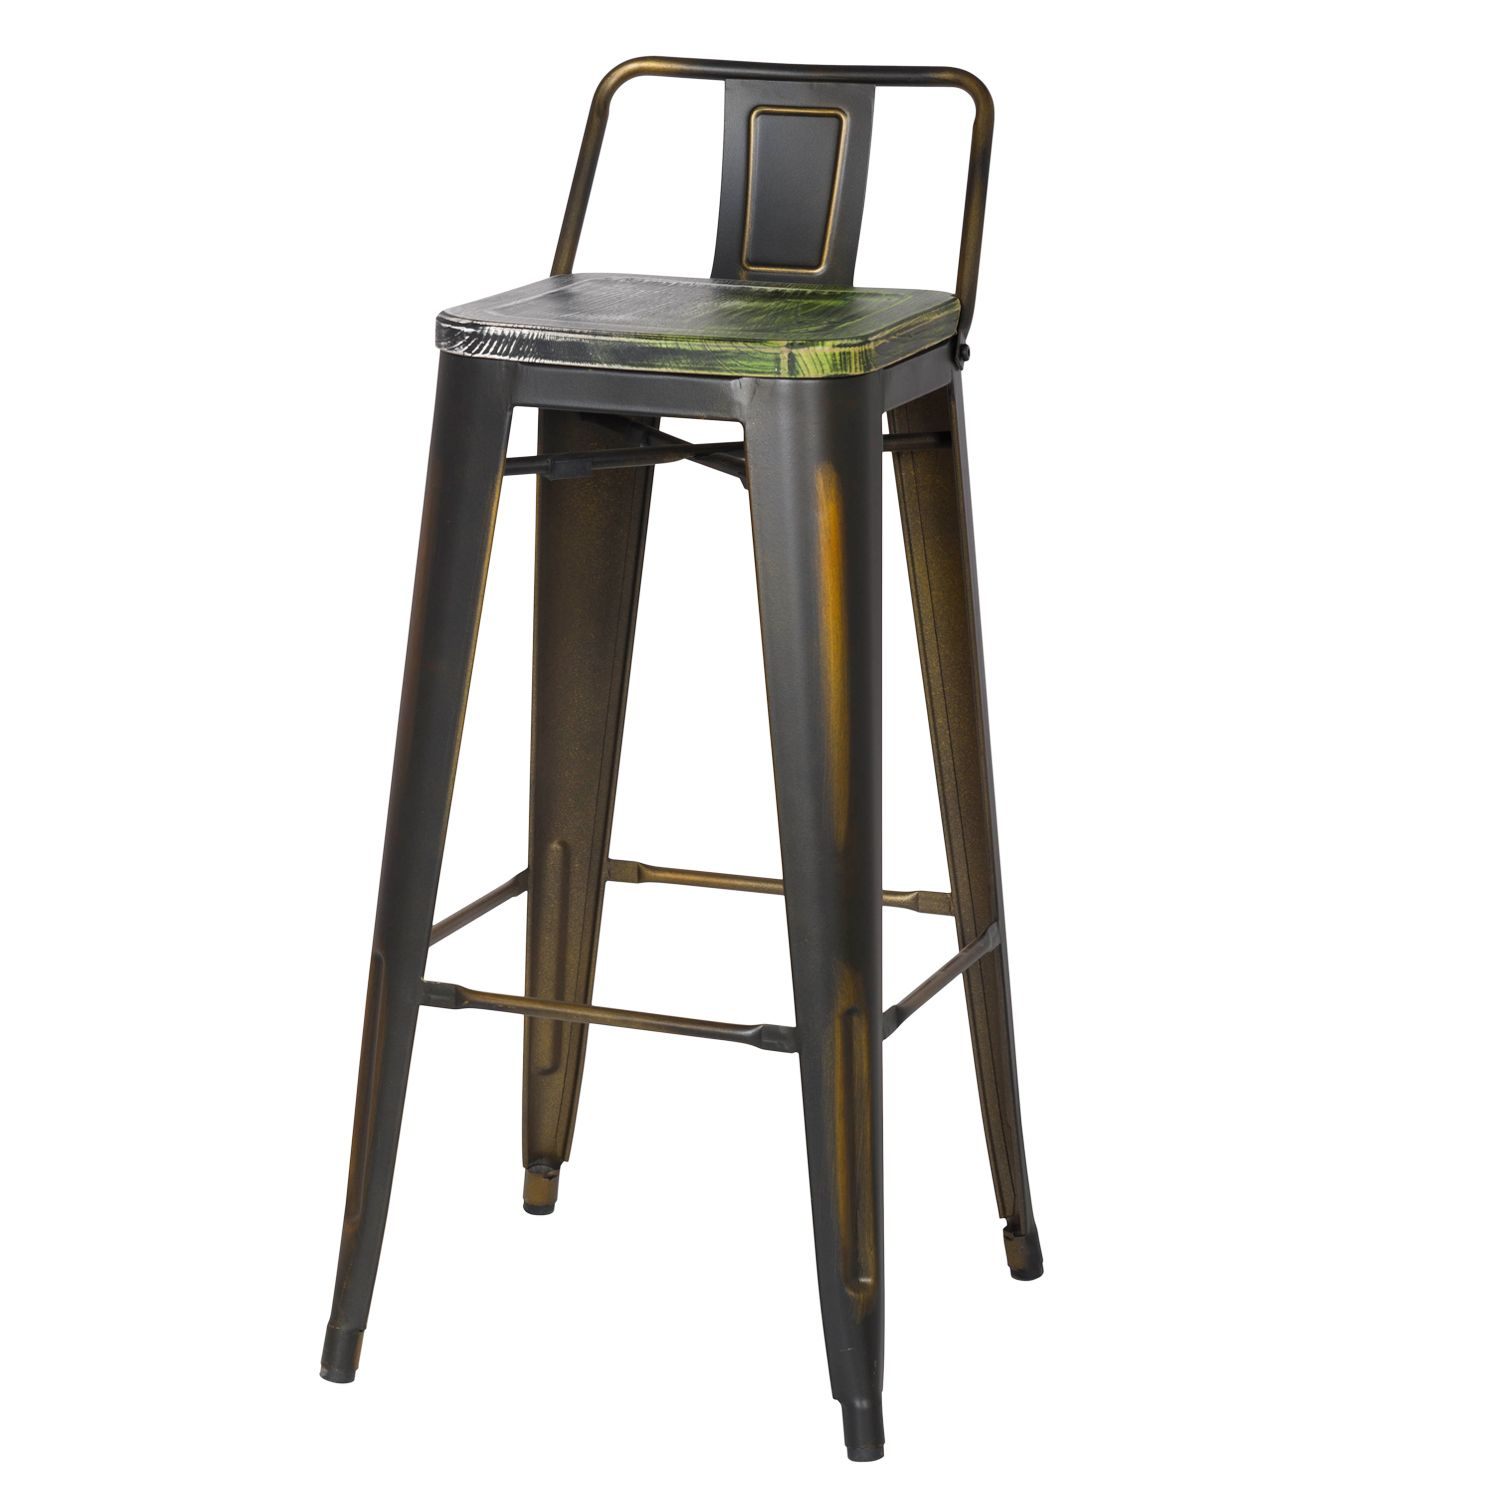 Coupling The Tall Height Of A Counter Stool With The Comfort And Practicality Of A Dining Chair This Delightful Pair Metal C Metal Bar Stools Bar Stools Stool